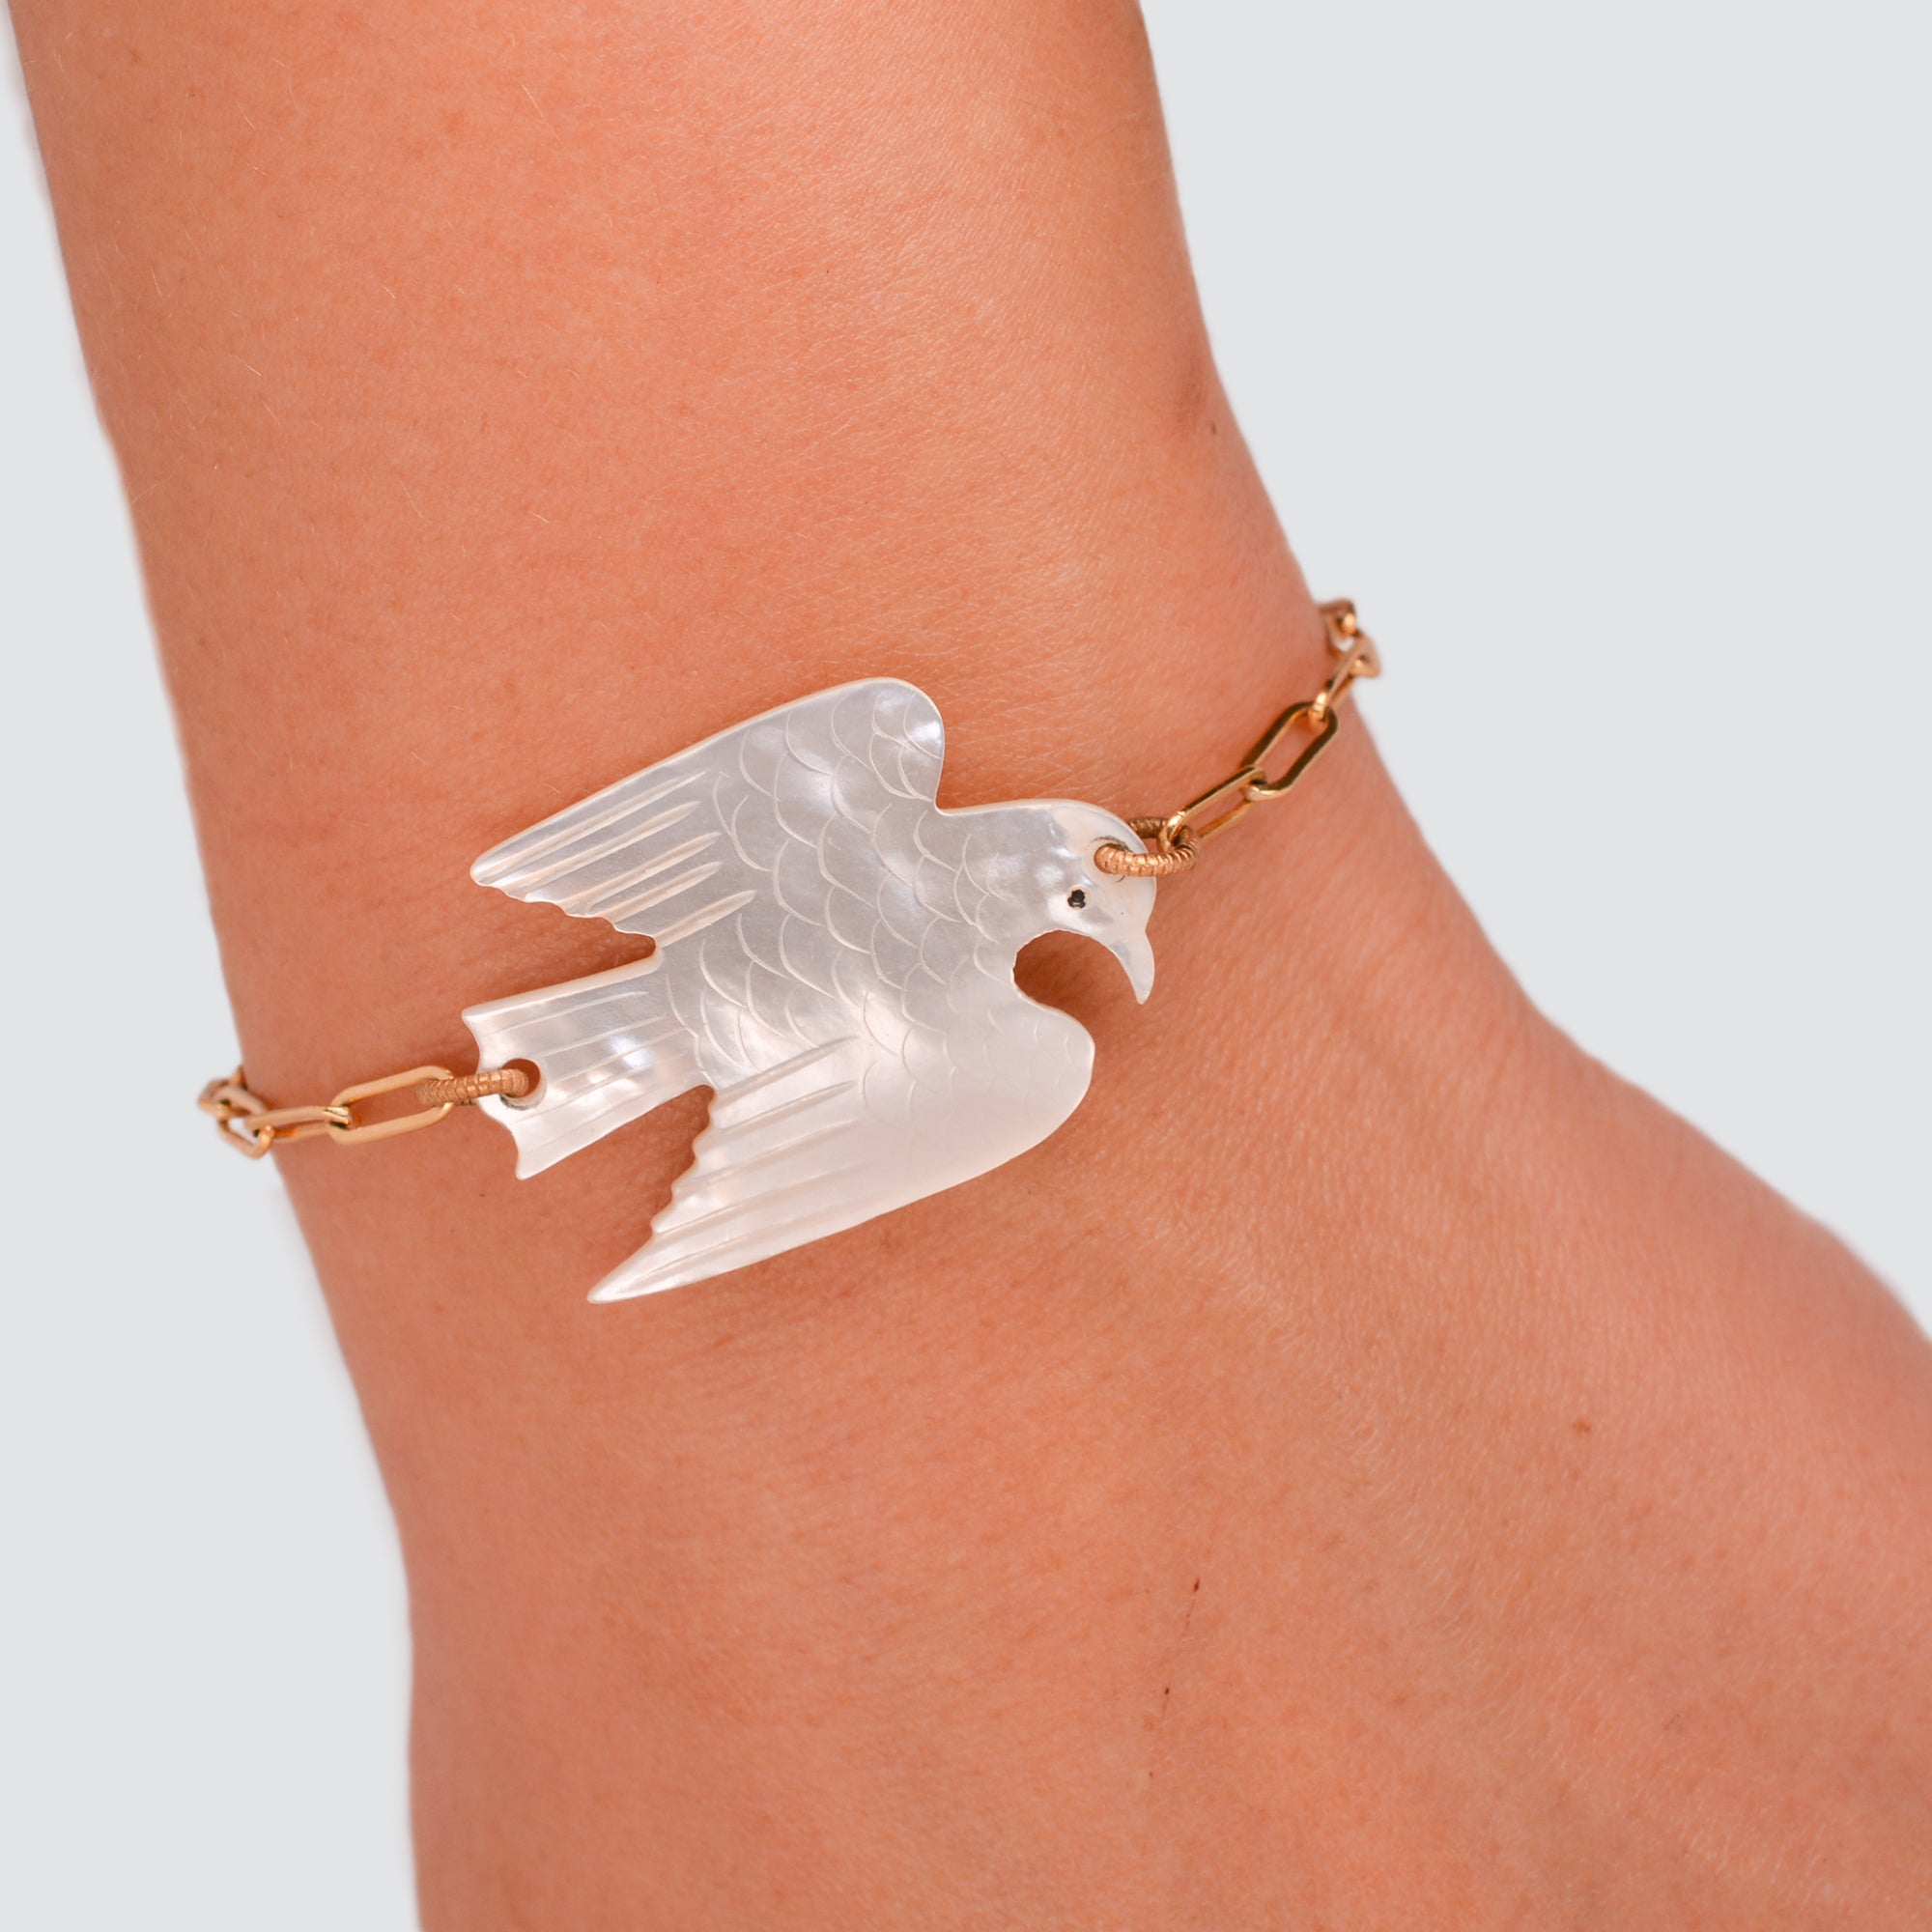 MOTHER OF PEARL // BRACELET // EAGLE